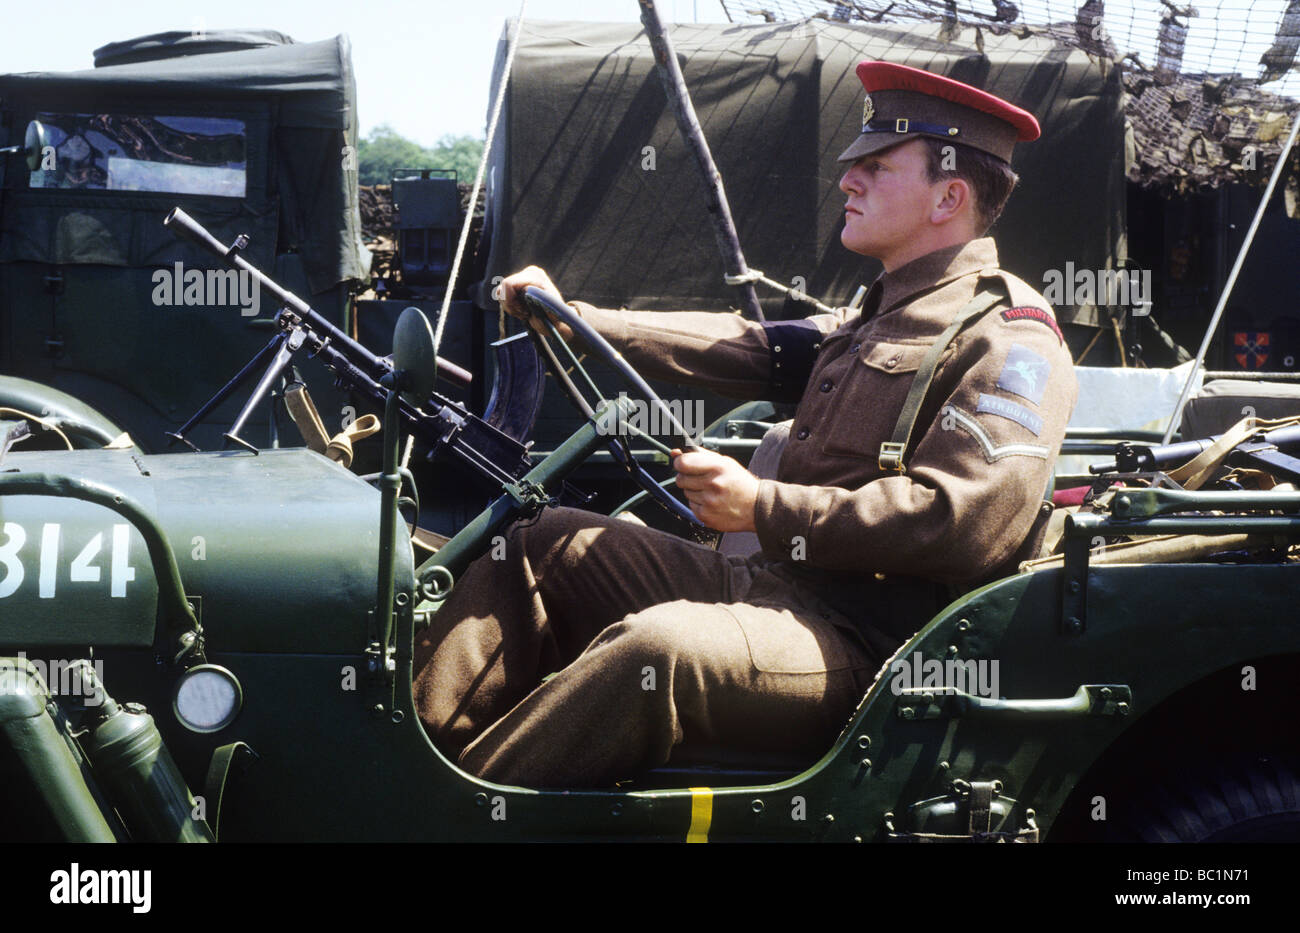 2nd World War historical re-enactment MP Military Policeman driving jeep redcap soldier uniform British Army khaki - Stock Image